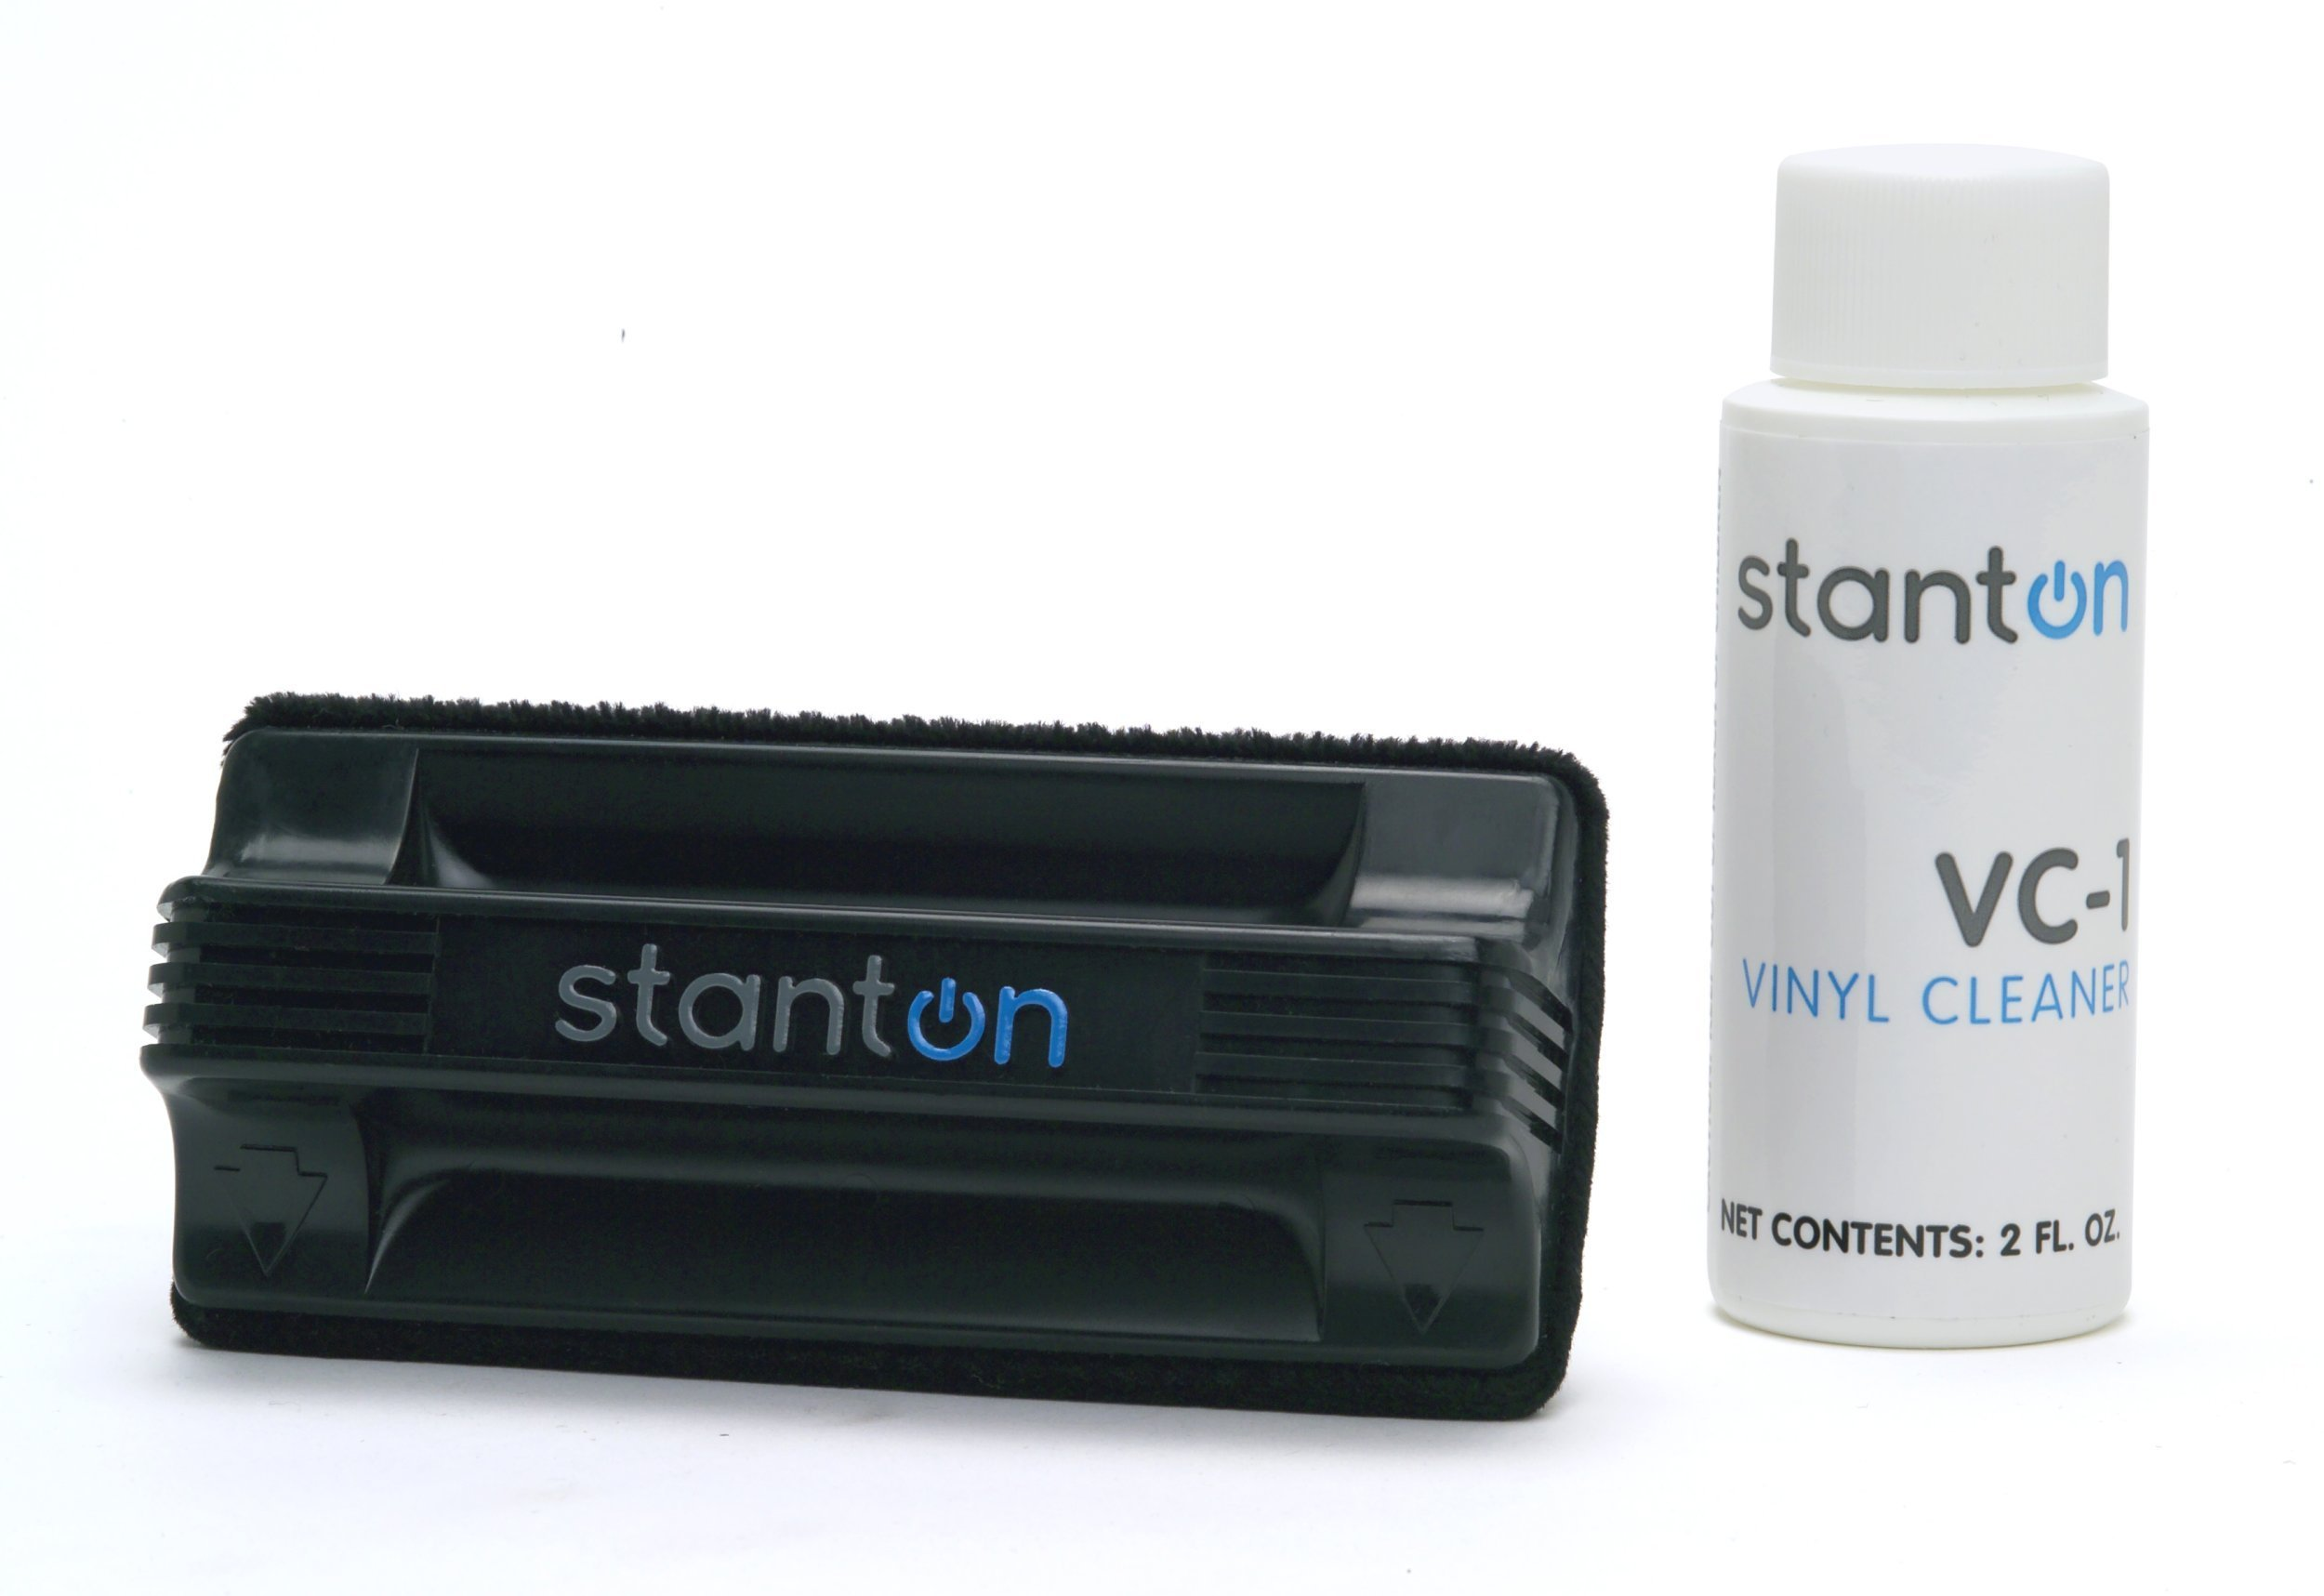 Stanton VC1 Vinyl Record Cleaner Kit with Brush by Stanton